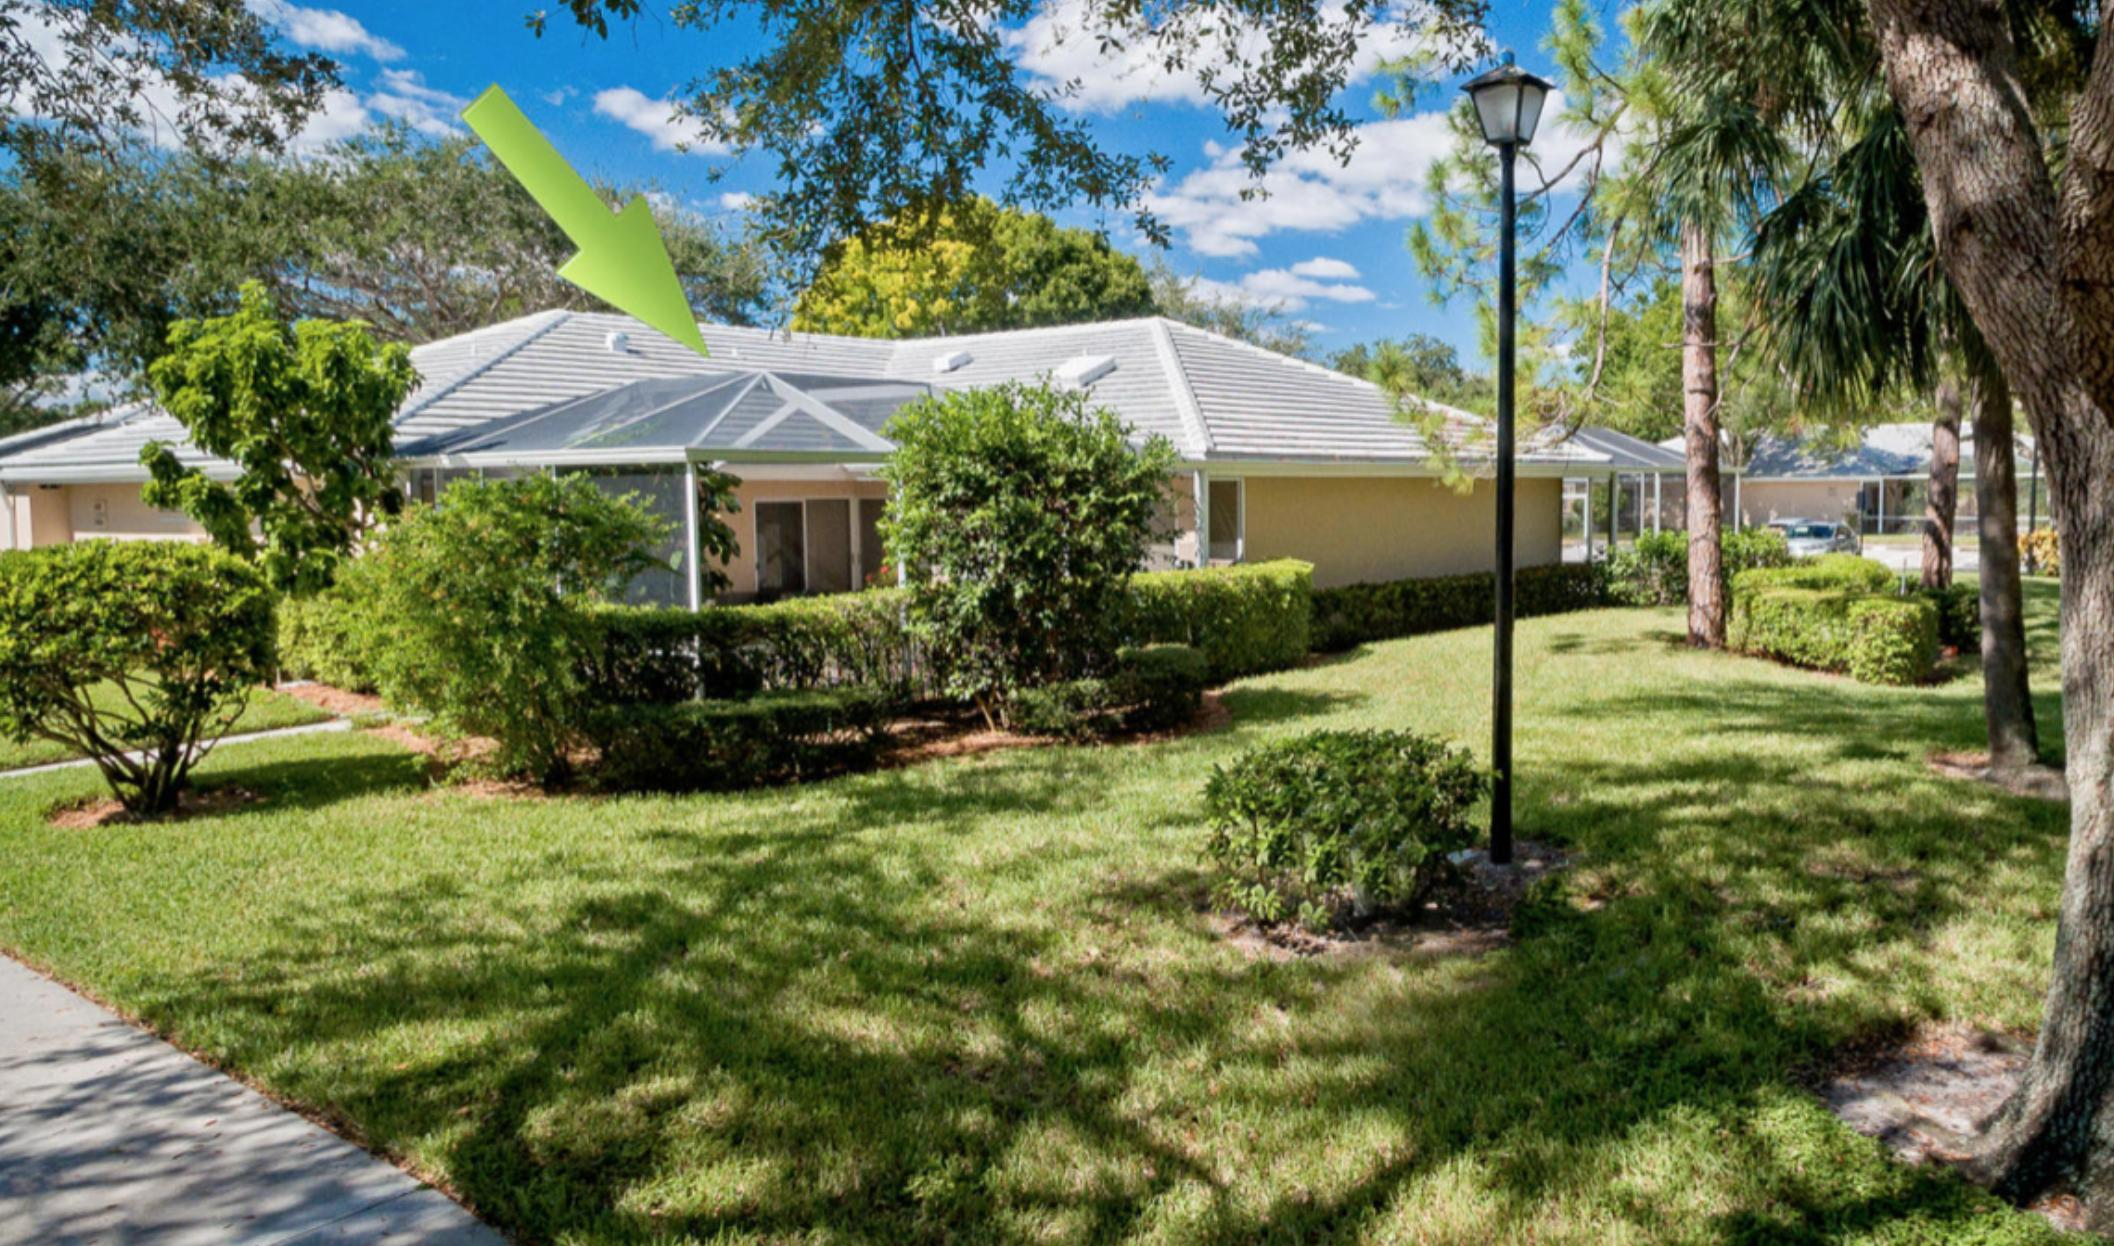 ''RARELY AVAILABLE'' Don't miss your chance to rent this beautiful fully upgraded 2/2 split floor plan Townhome. Quiet and family oriented community in Palm Beach Gardens. Located in Lake Catherine off of Northlake Blvd. Private oasis setting with a large screened-in tropical patio with storage closet. 2 Assigned parking spaces directly in front of townhome offers easy access. Large tiled living space and dining area with vaulted ceilings and wall unit. 2 Large bedrooms with private bathrooms and spacious closets. Gourmet kitchen with stainless steel appliances and front load washer and dryer. UNFURNISHED. Access to community pool.